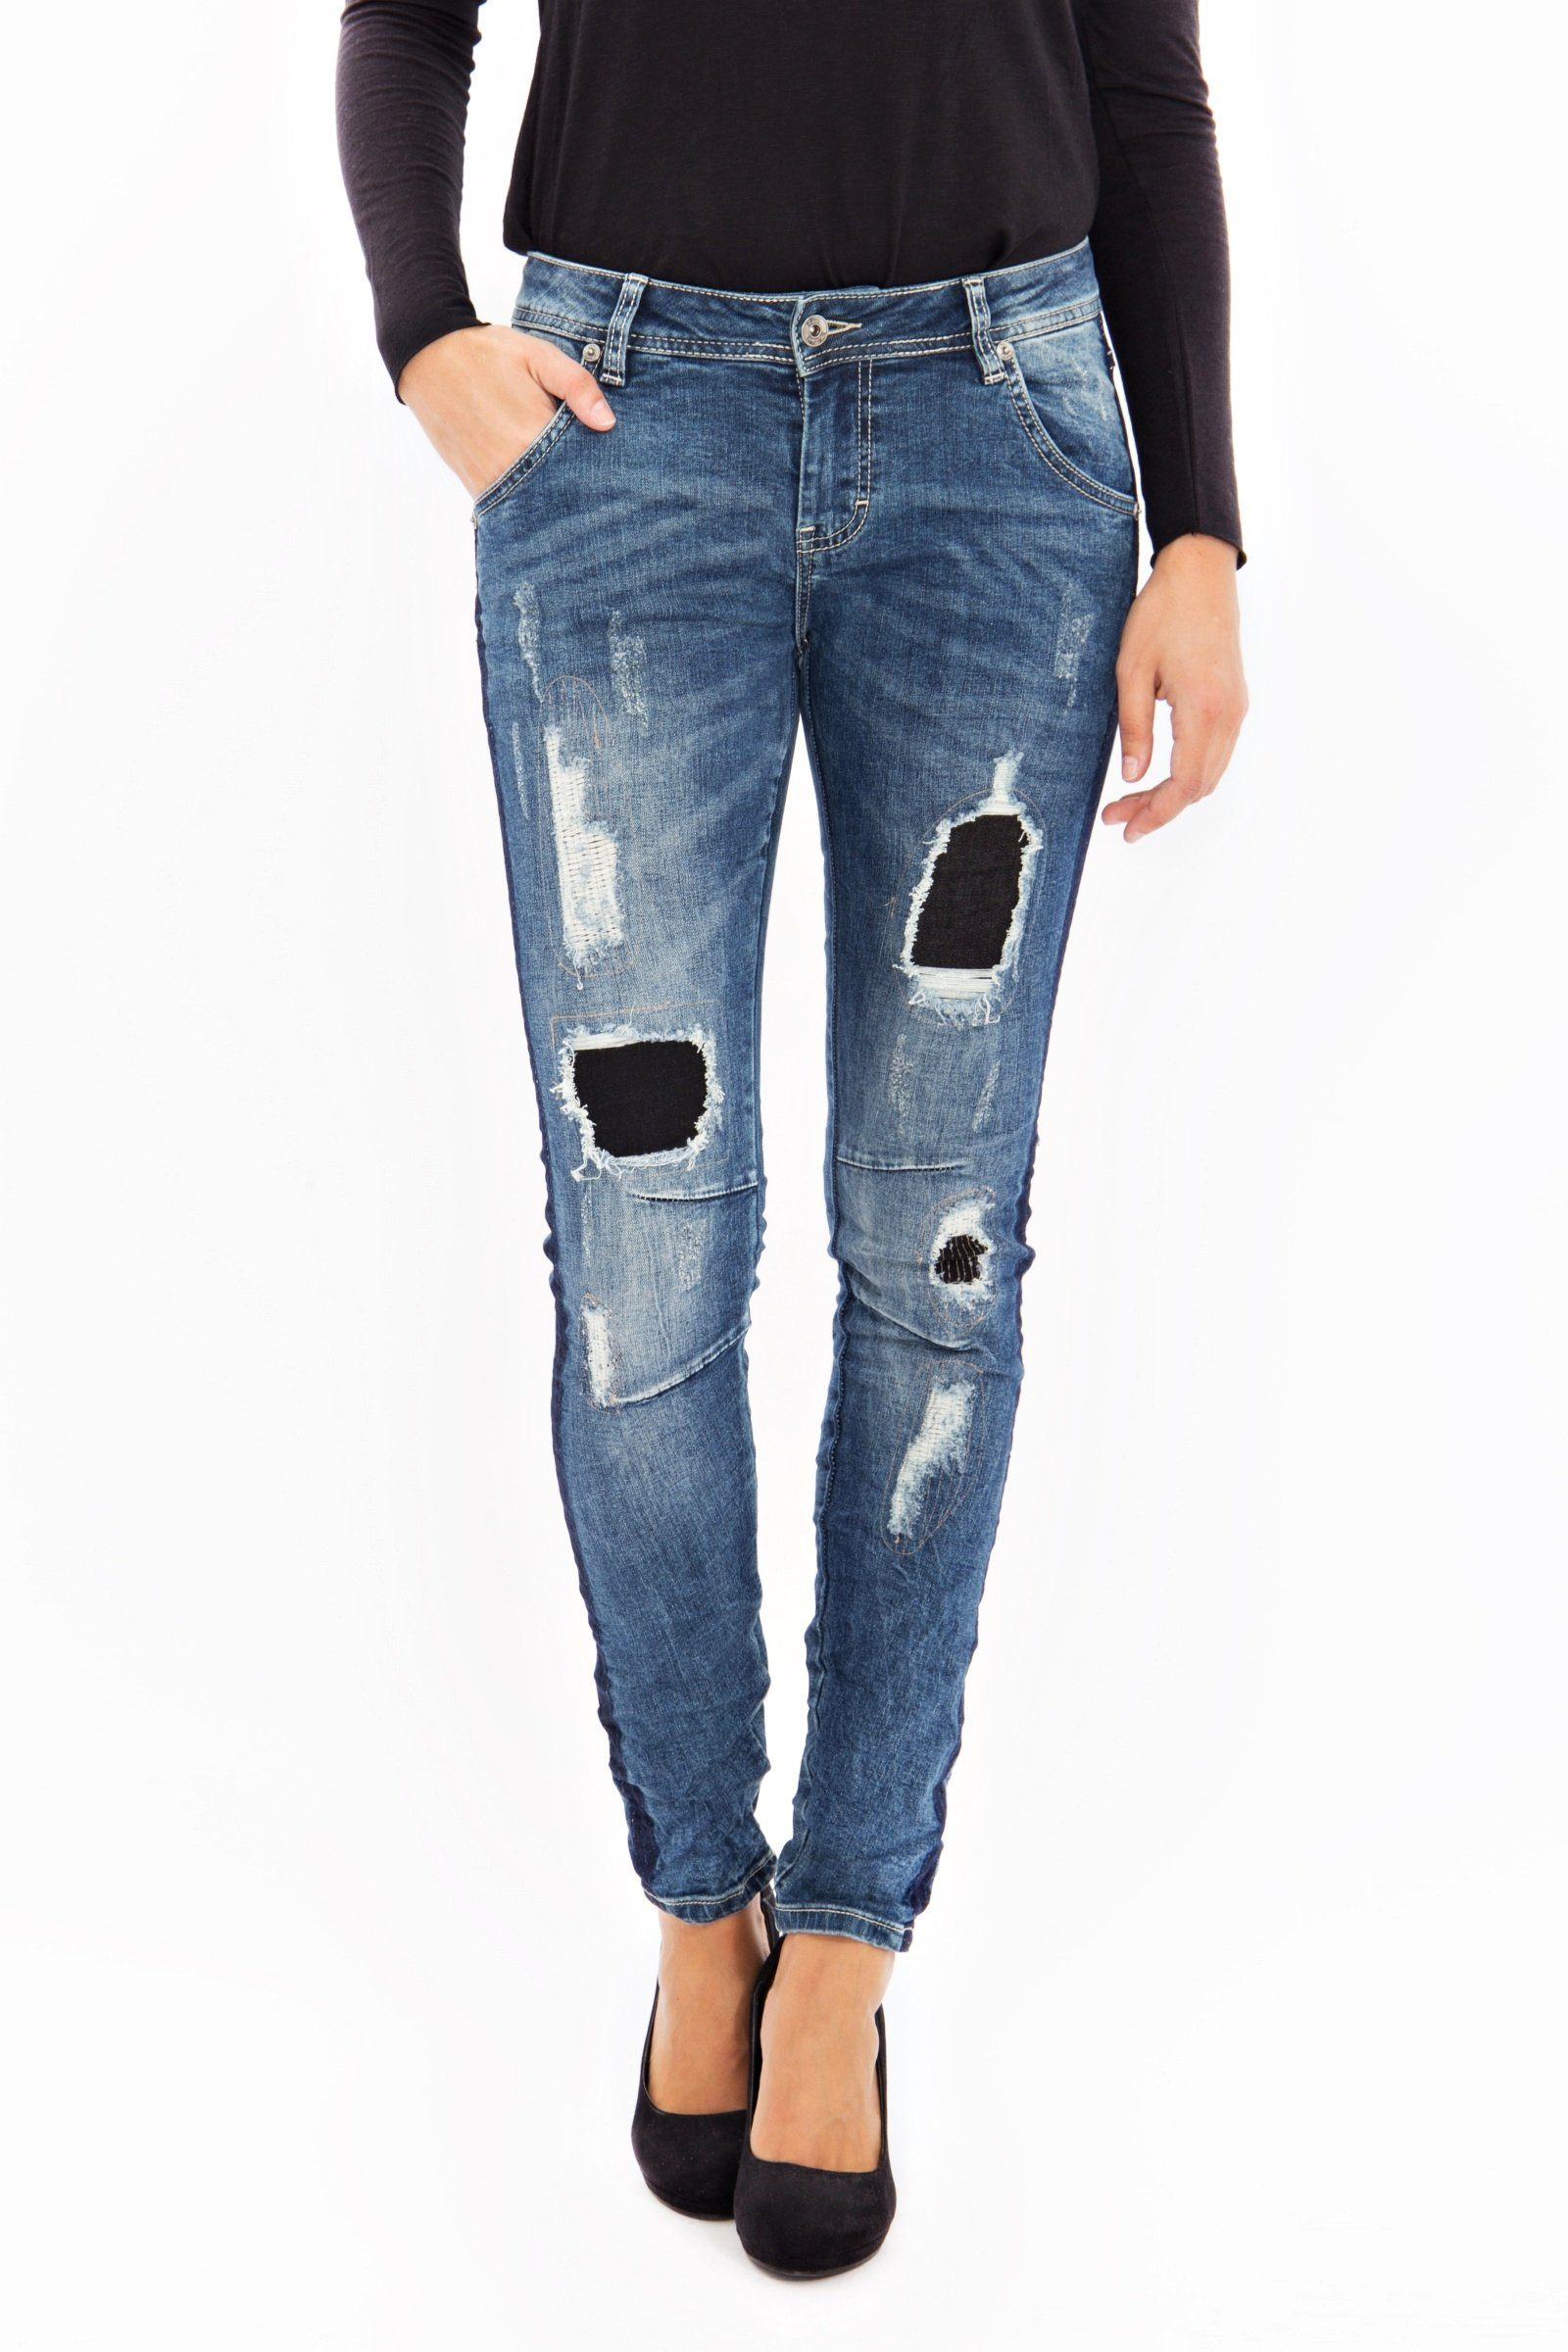 Blue Monkey Skinny-fit-Jeans Tina 1523 | 04251254996069